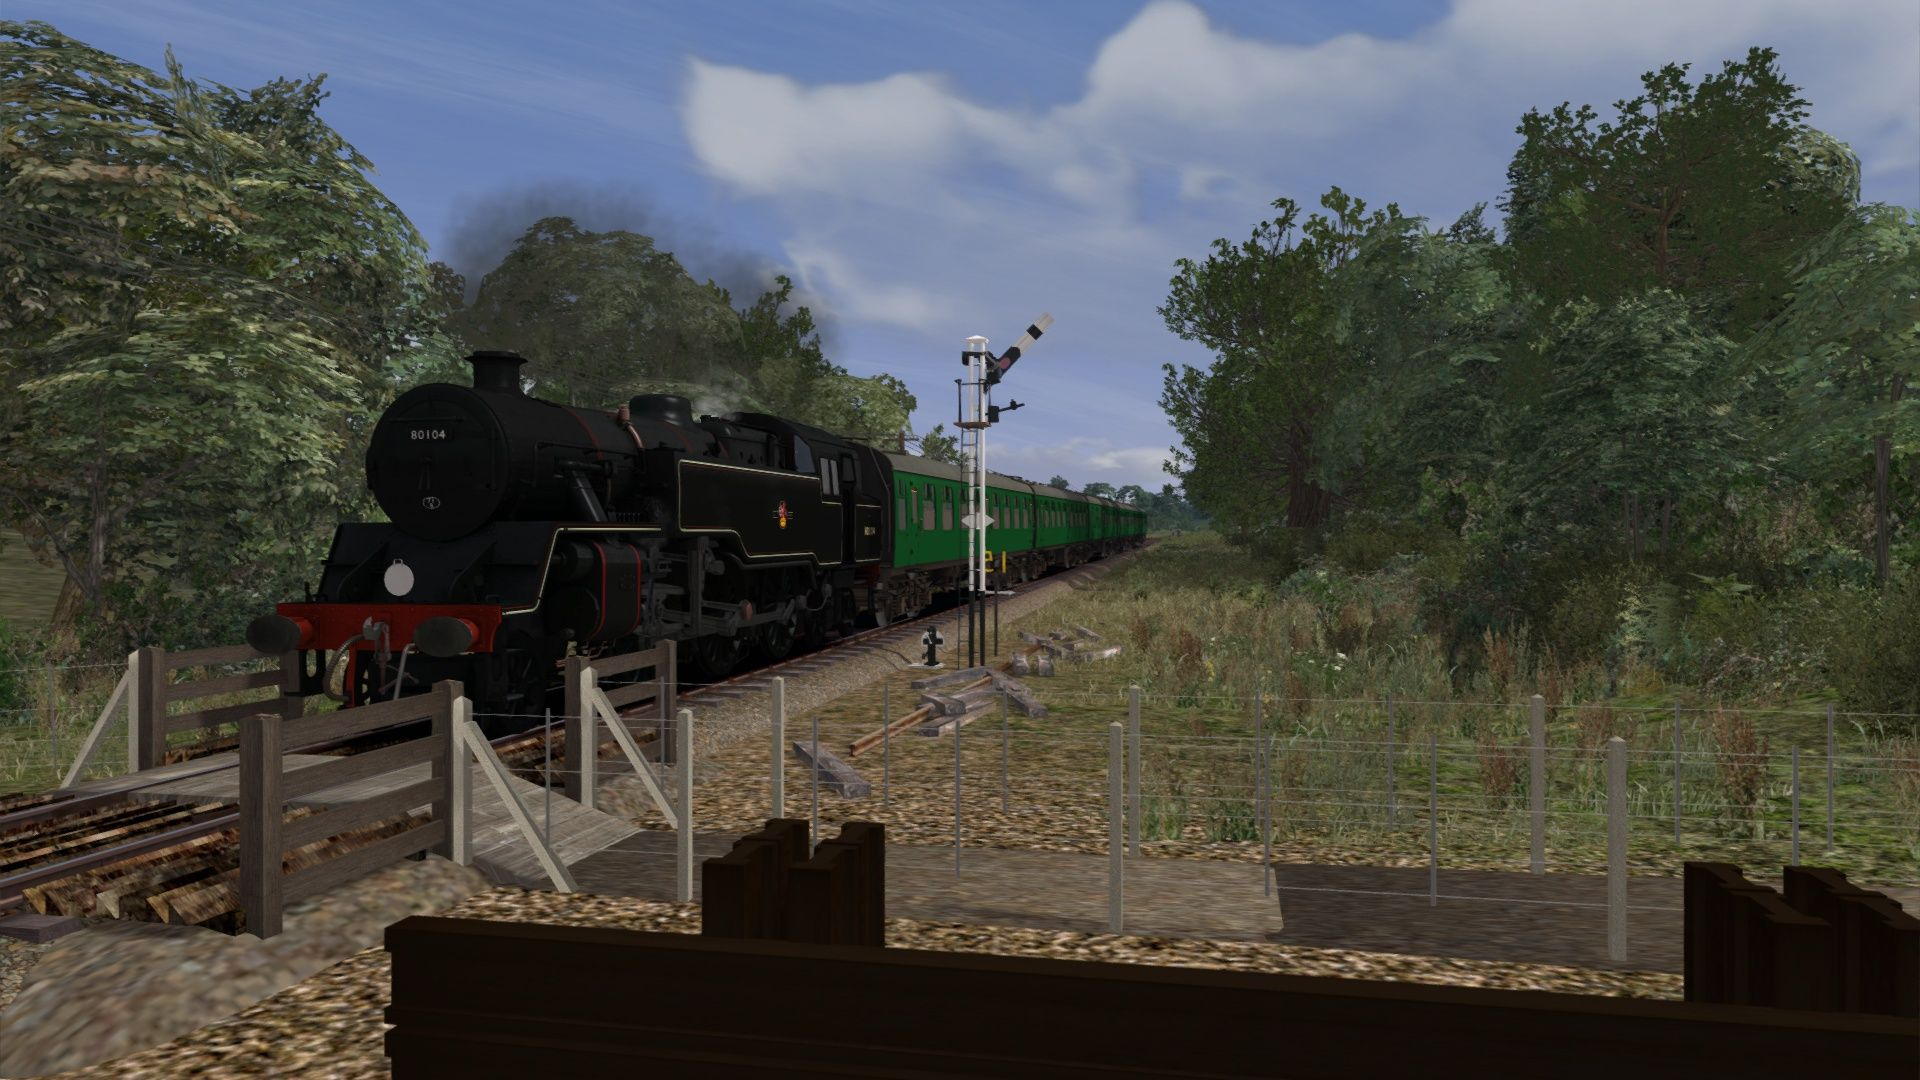 Screenshot_Swanage Railway_50.63657--2.05261_16-19-39